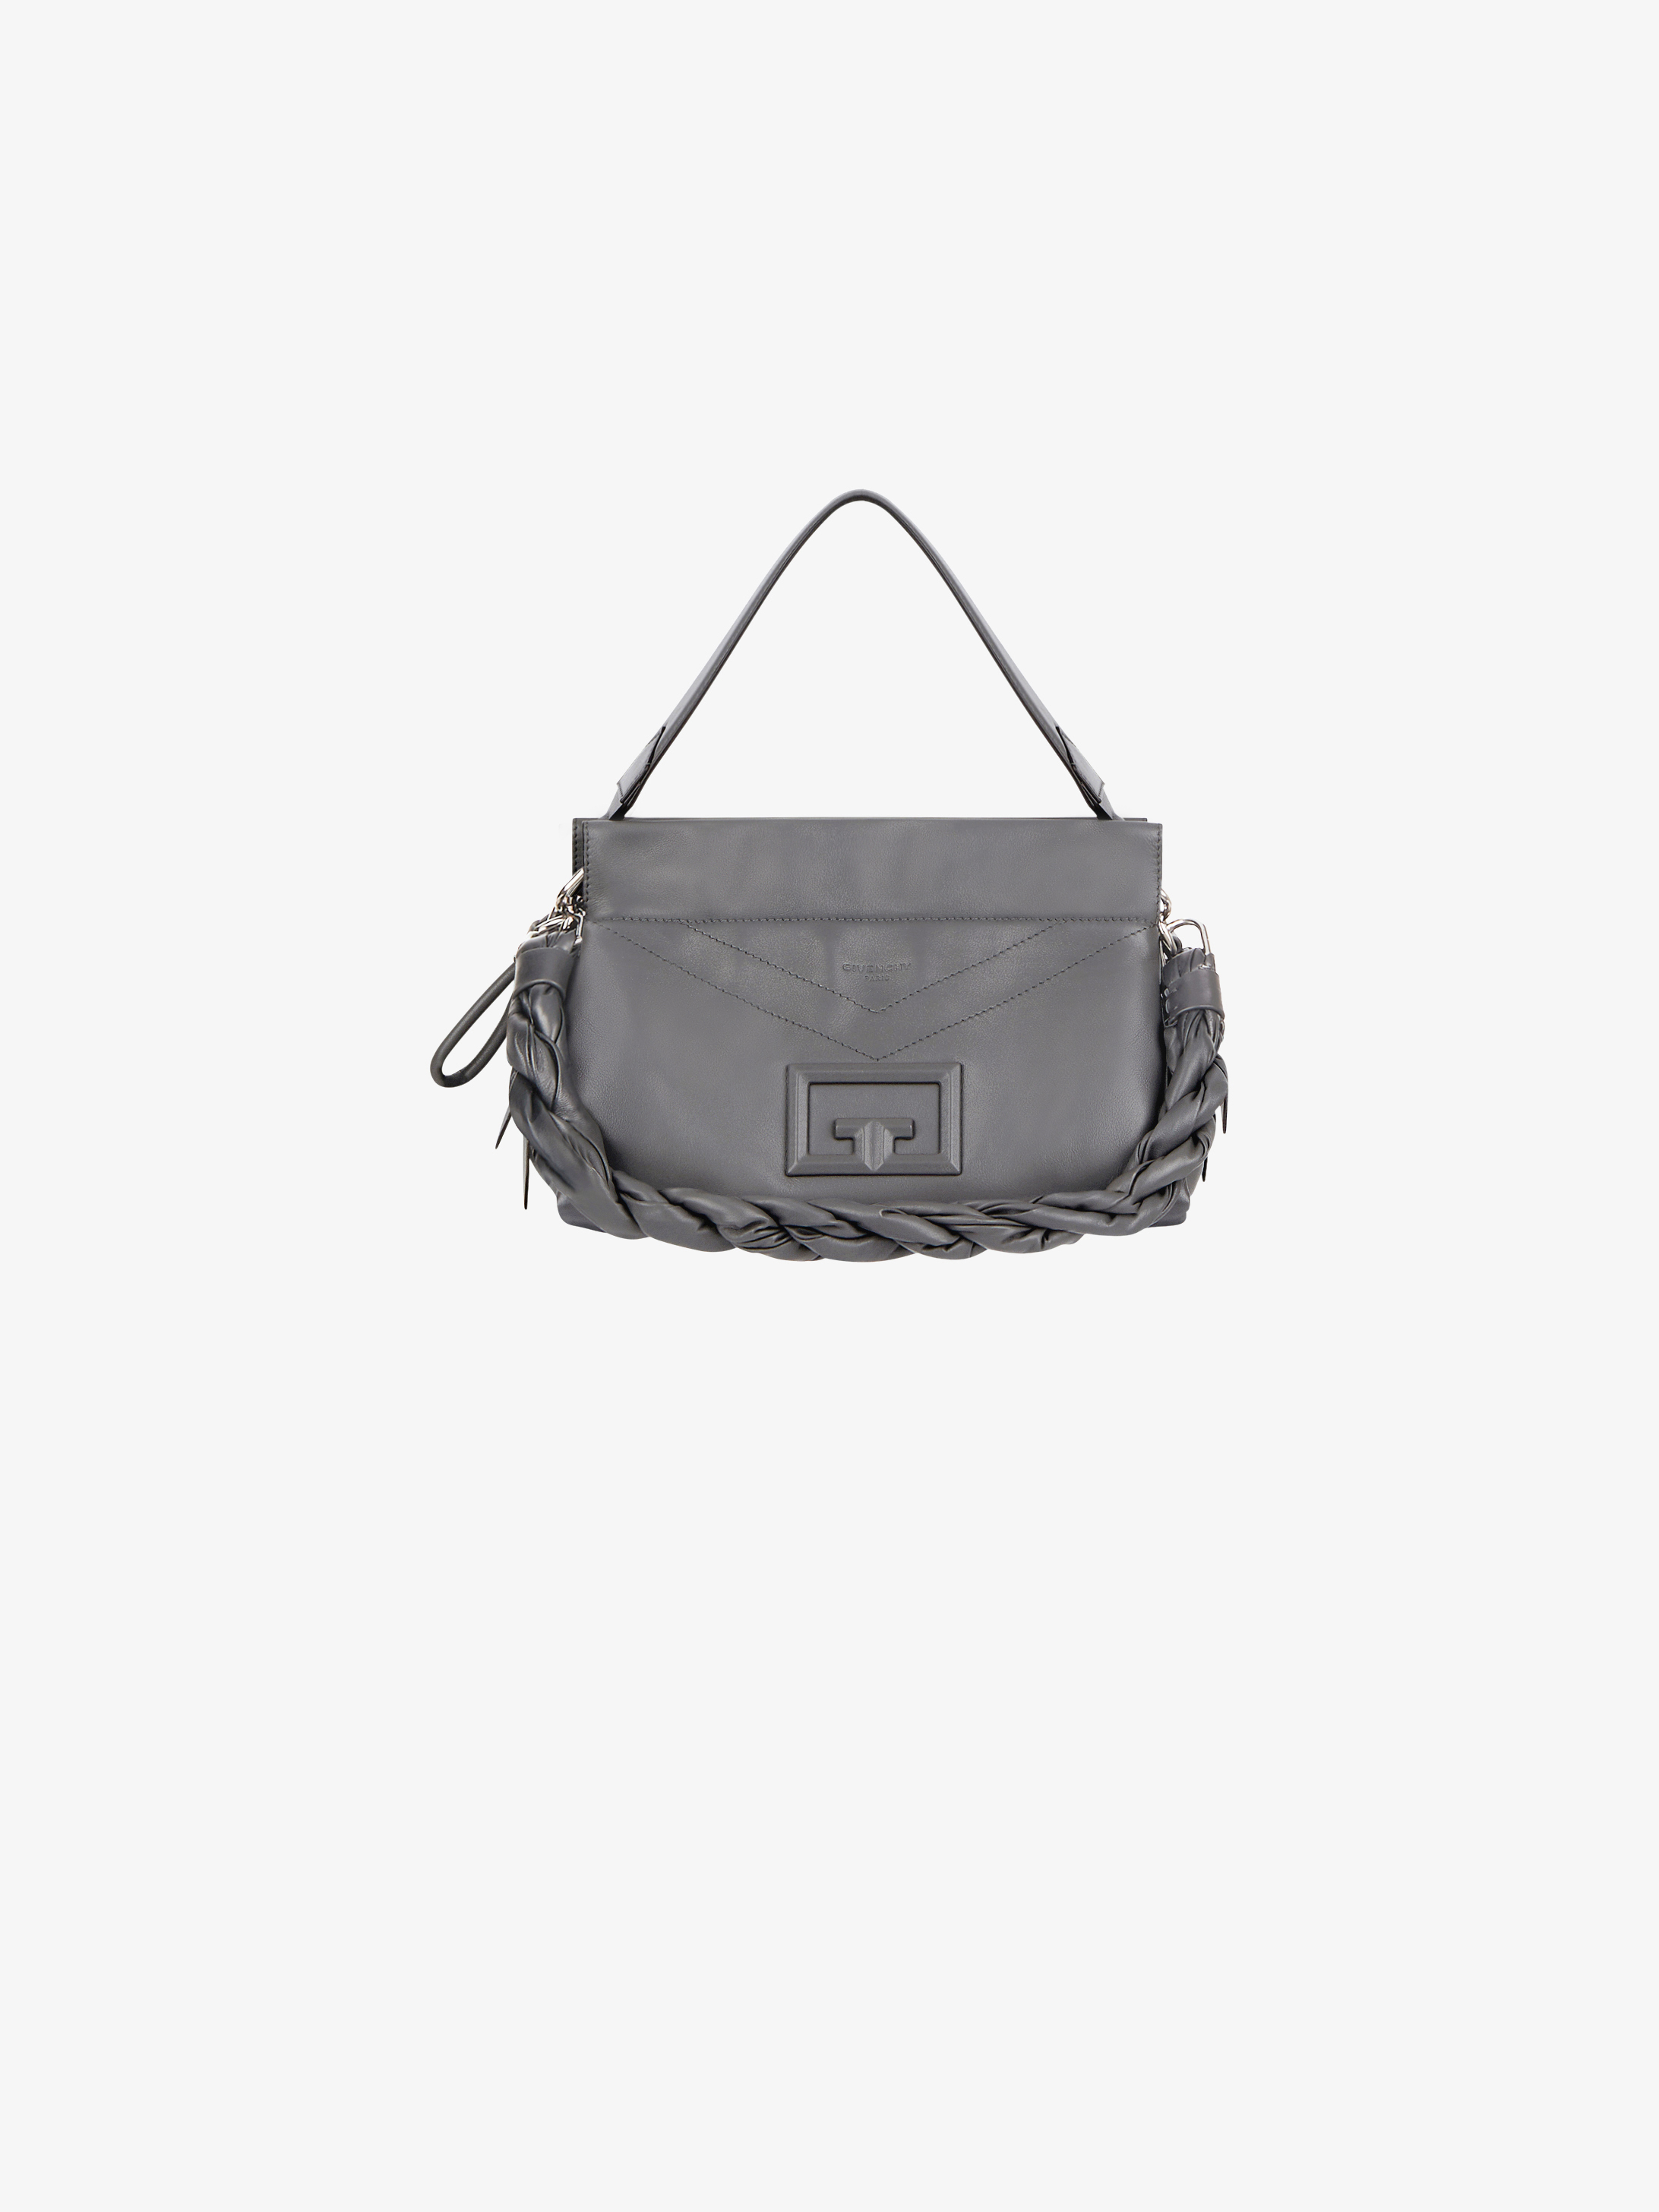 Medium ID93 bag in smooth leather